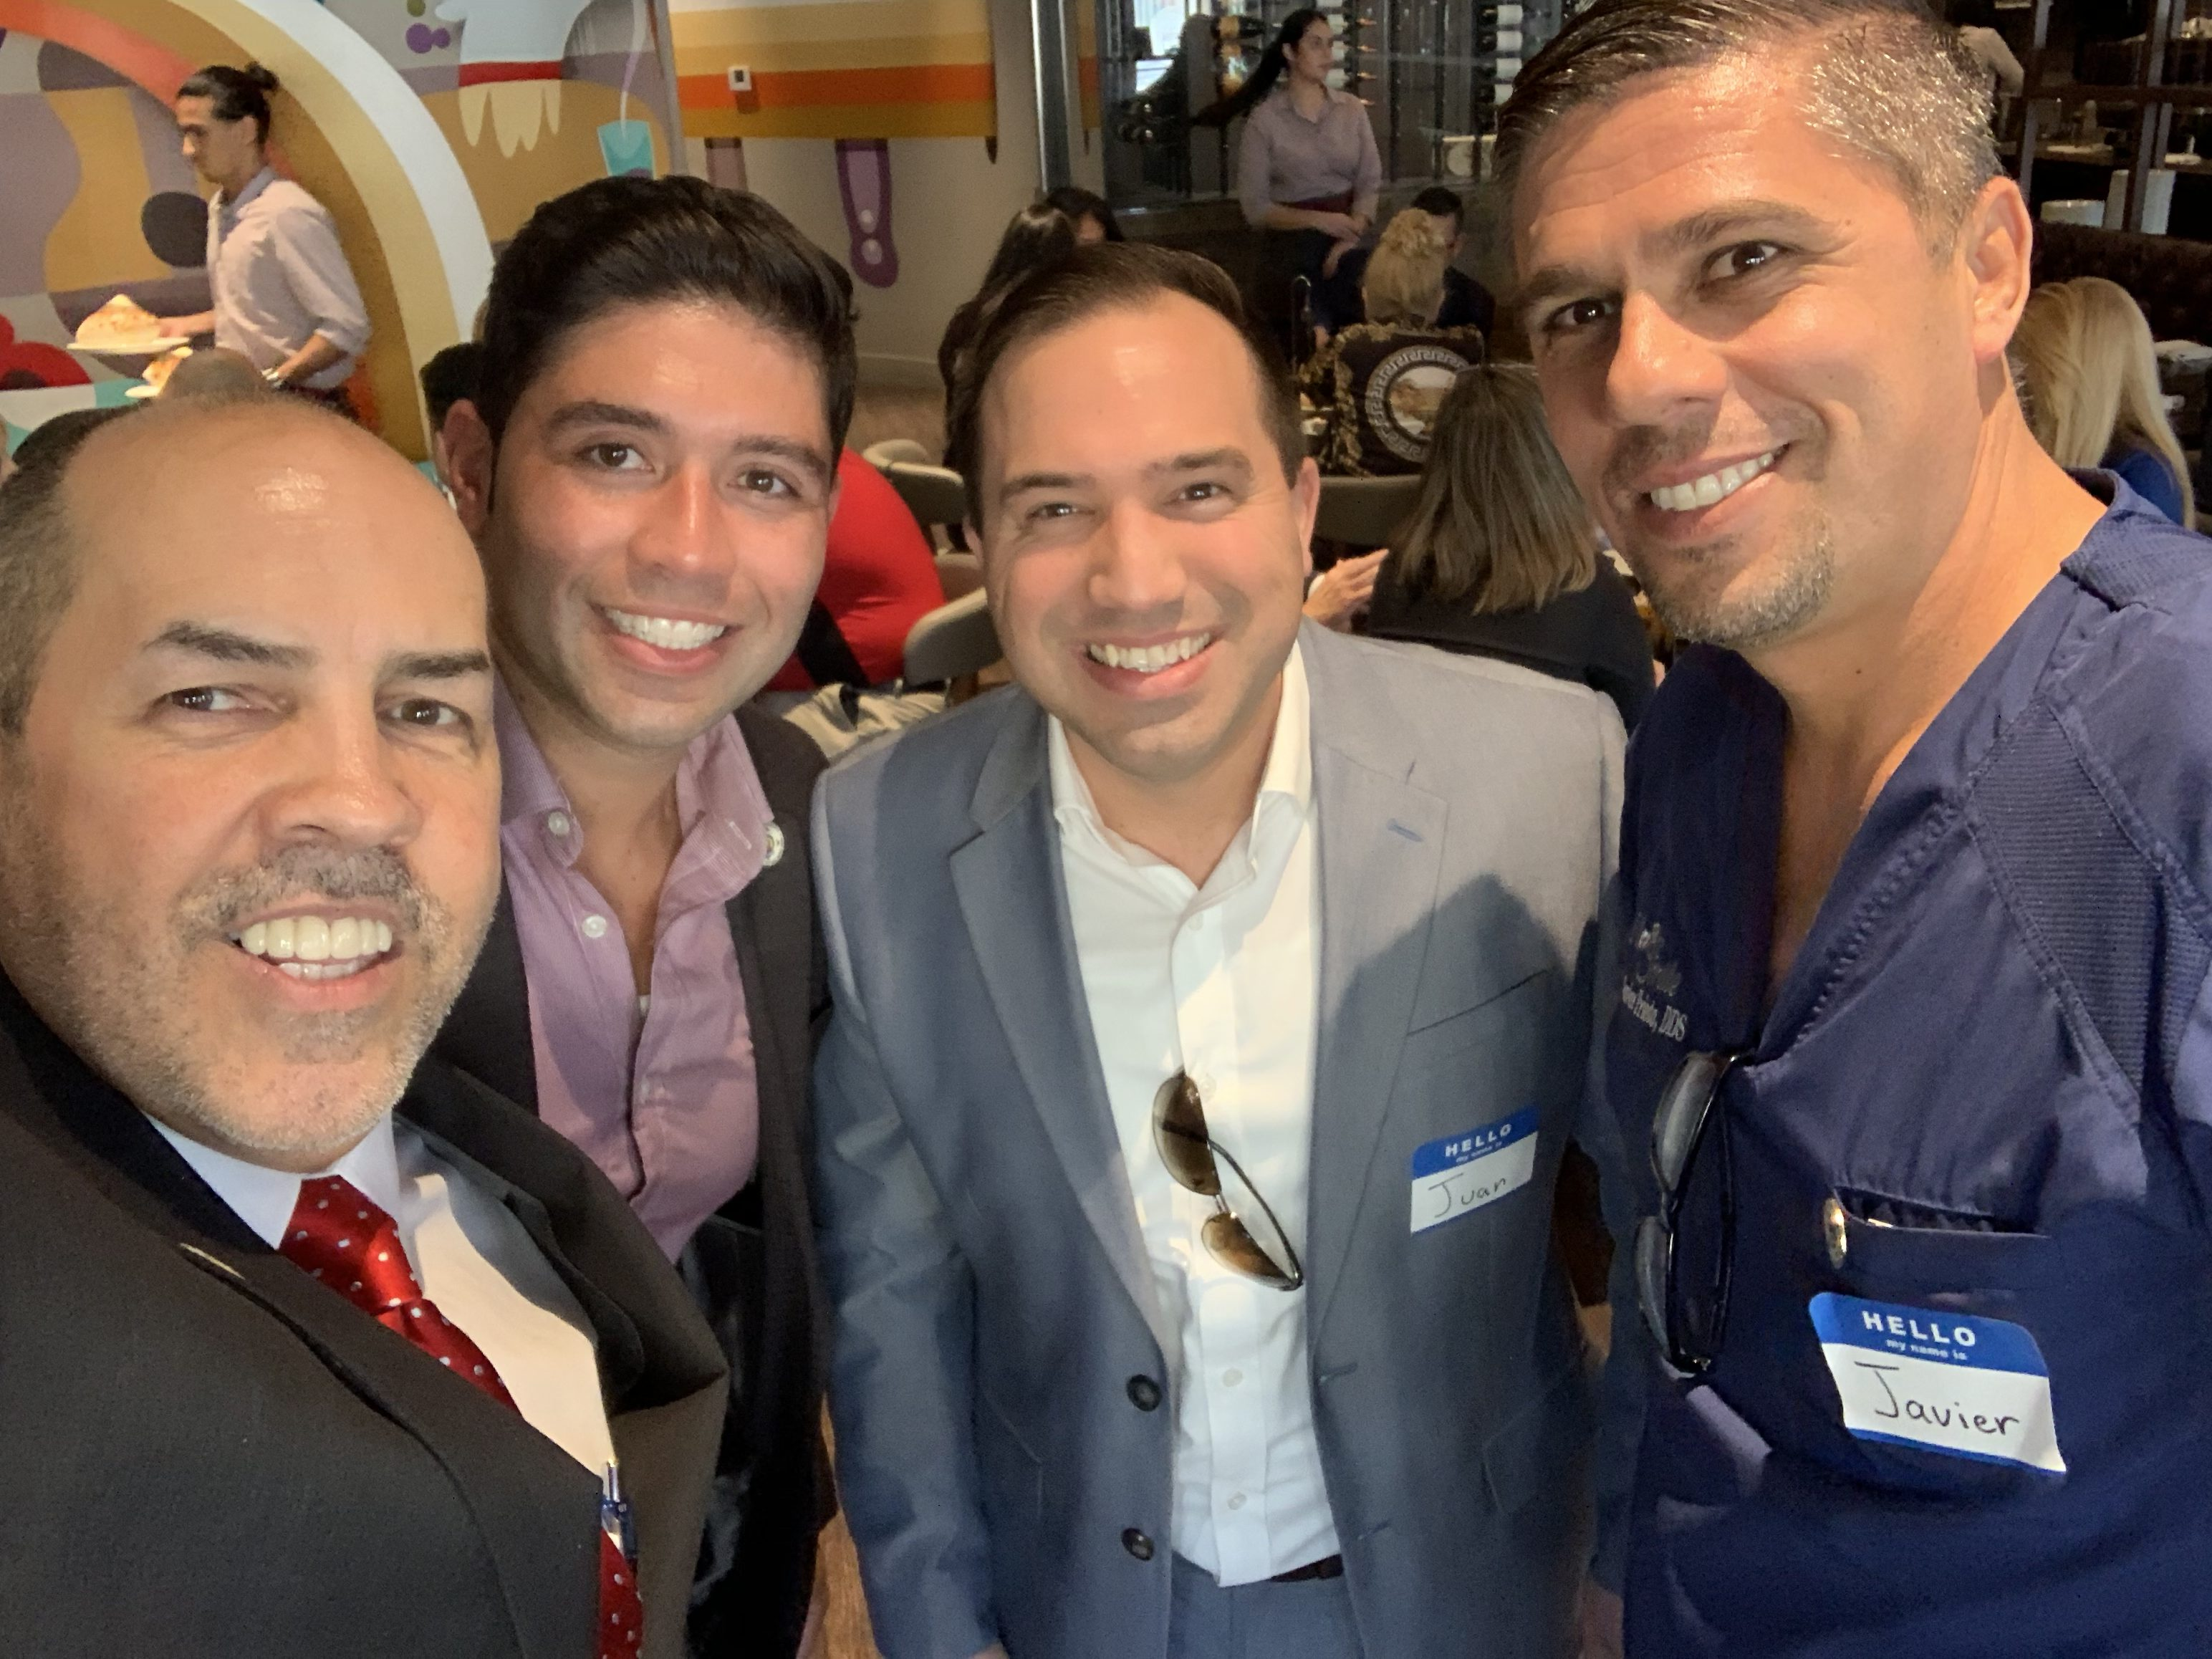 Manny Sarmiento, PereGonza, and Javier Prieto at Gusto Ristobar Luncheon hosted by the Doral Chamber of Commerce.